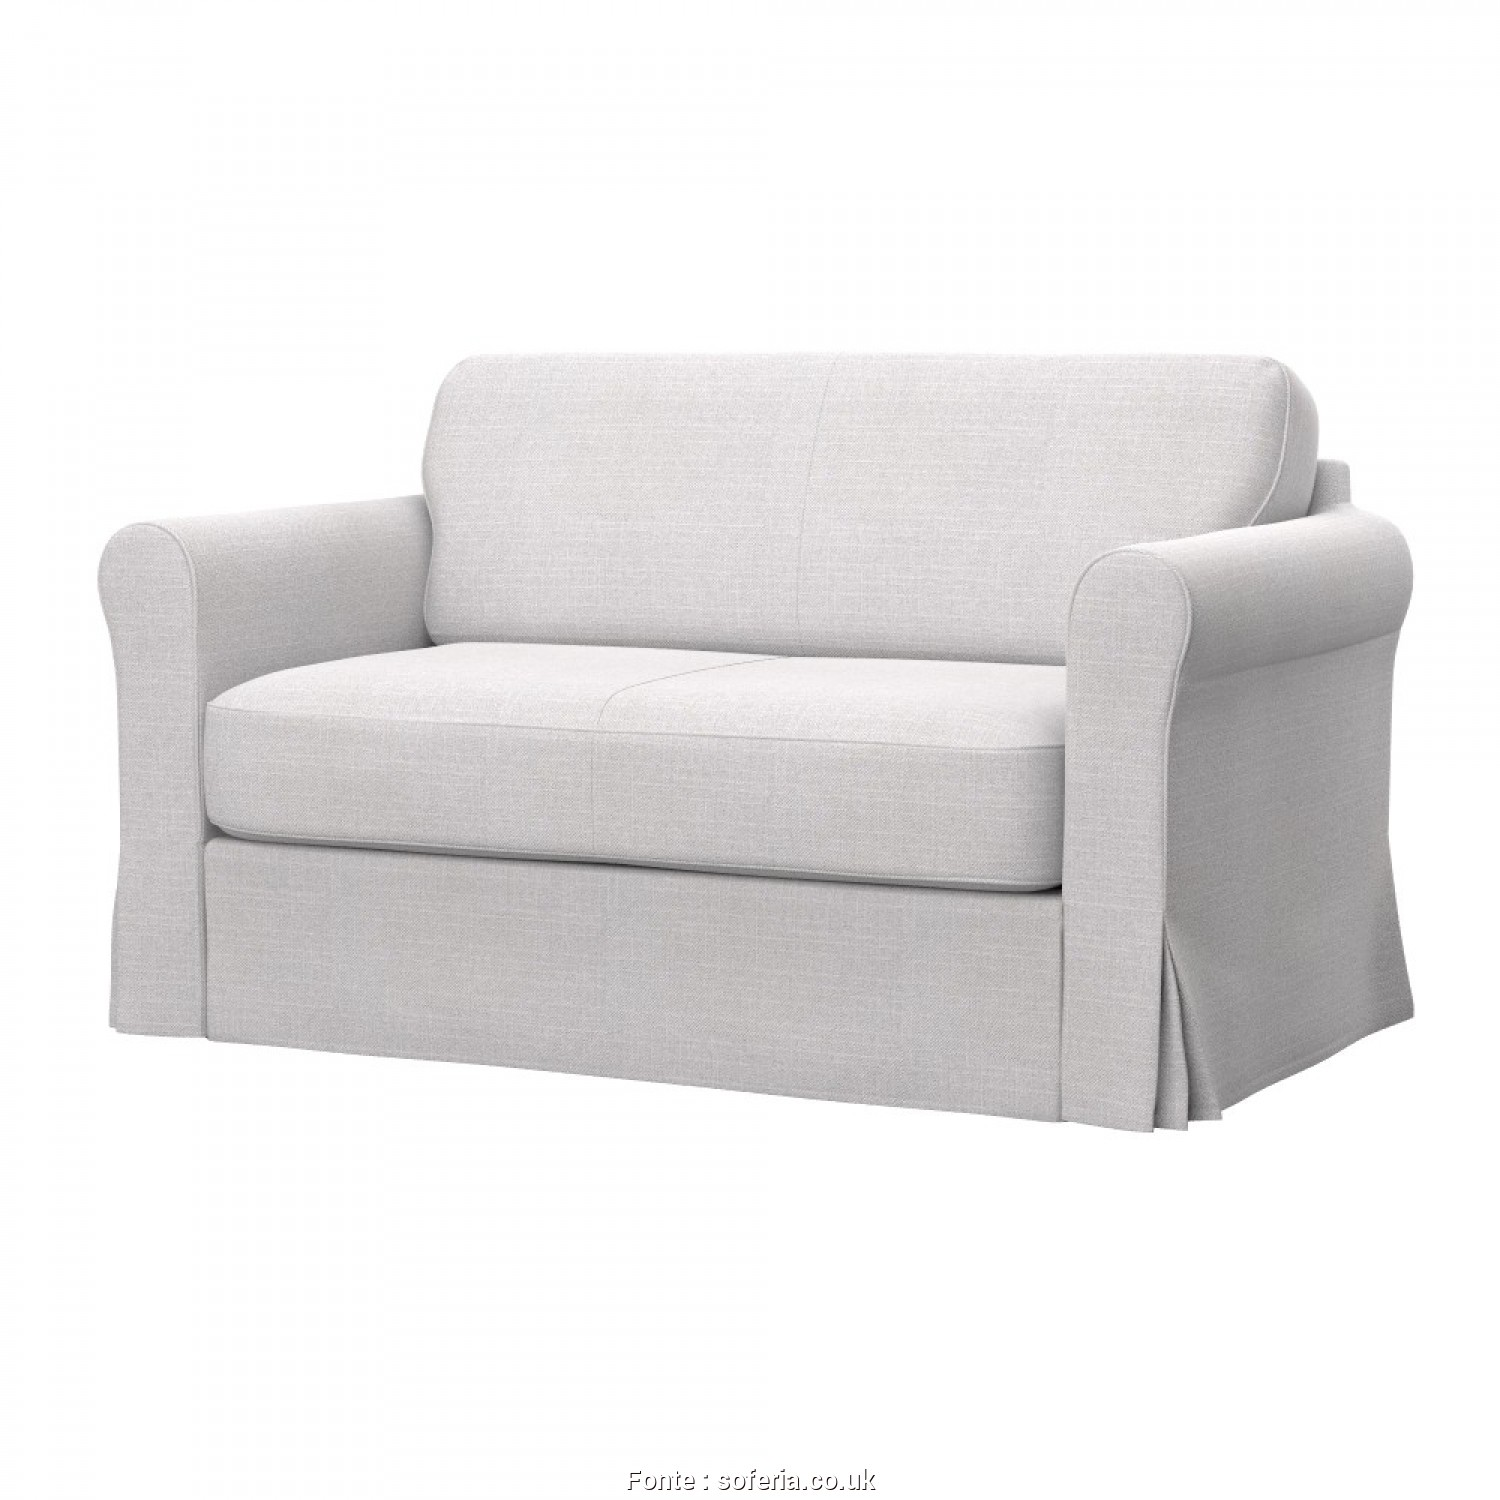 Divano Bordeaux Ikea, Bellissima IKEA Sofa Covers, Soferia, Covers, IKEA Sofas & Armchairs